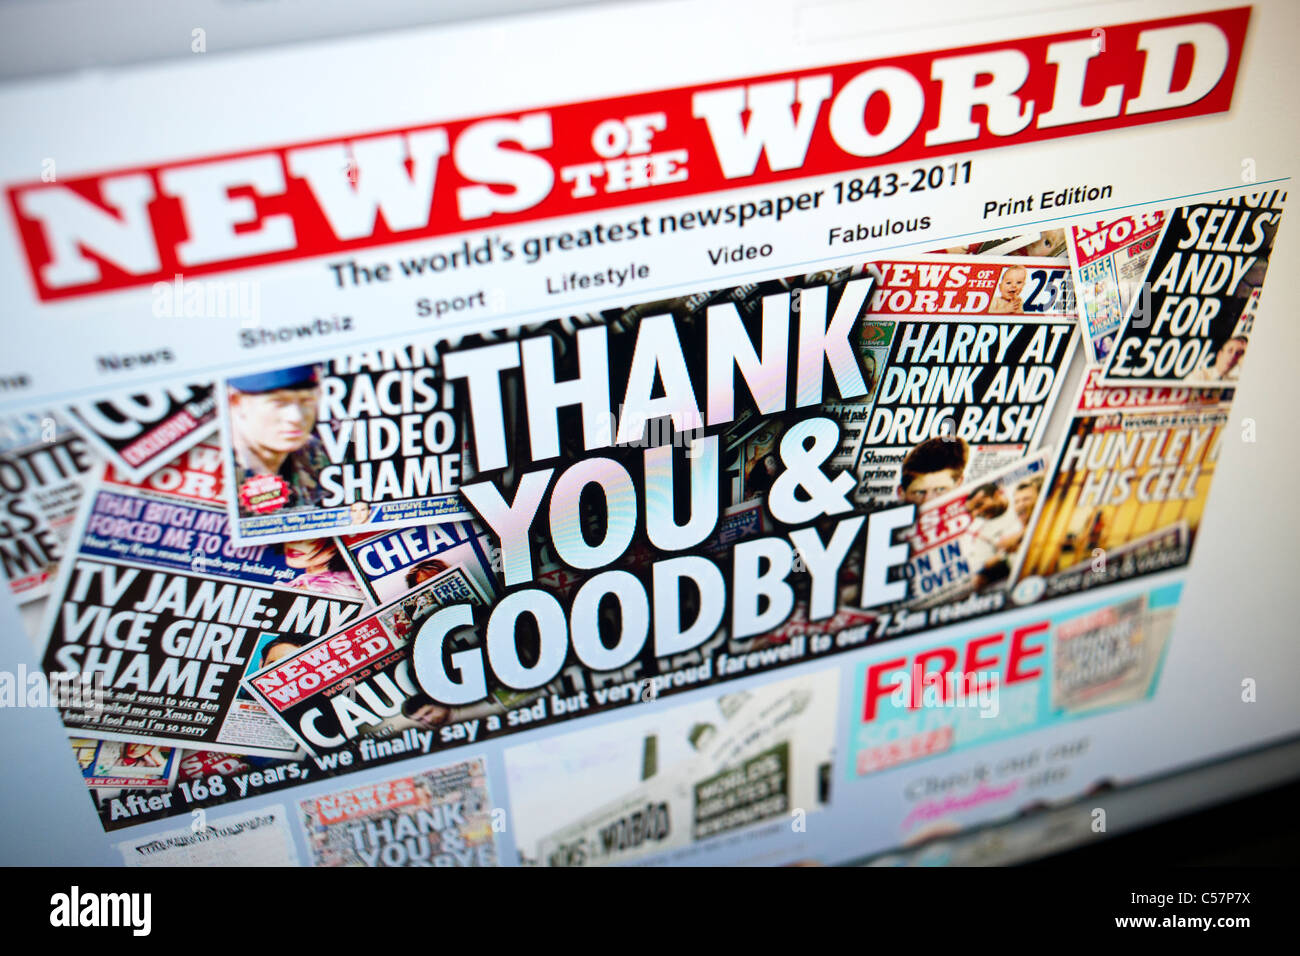 The website of the British tabloid, the News of the World last issue on July 10, 2011 Stock Photo